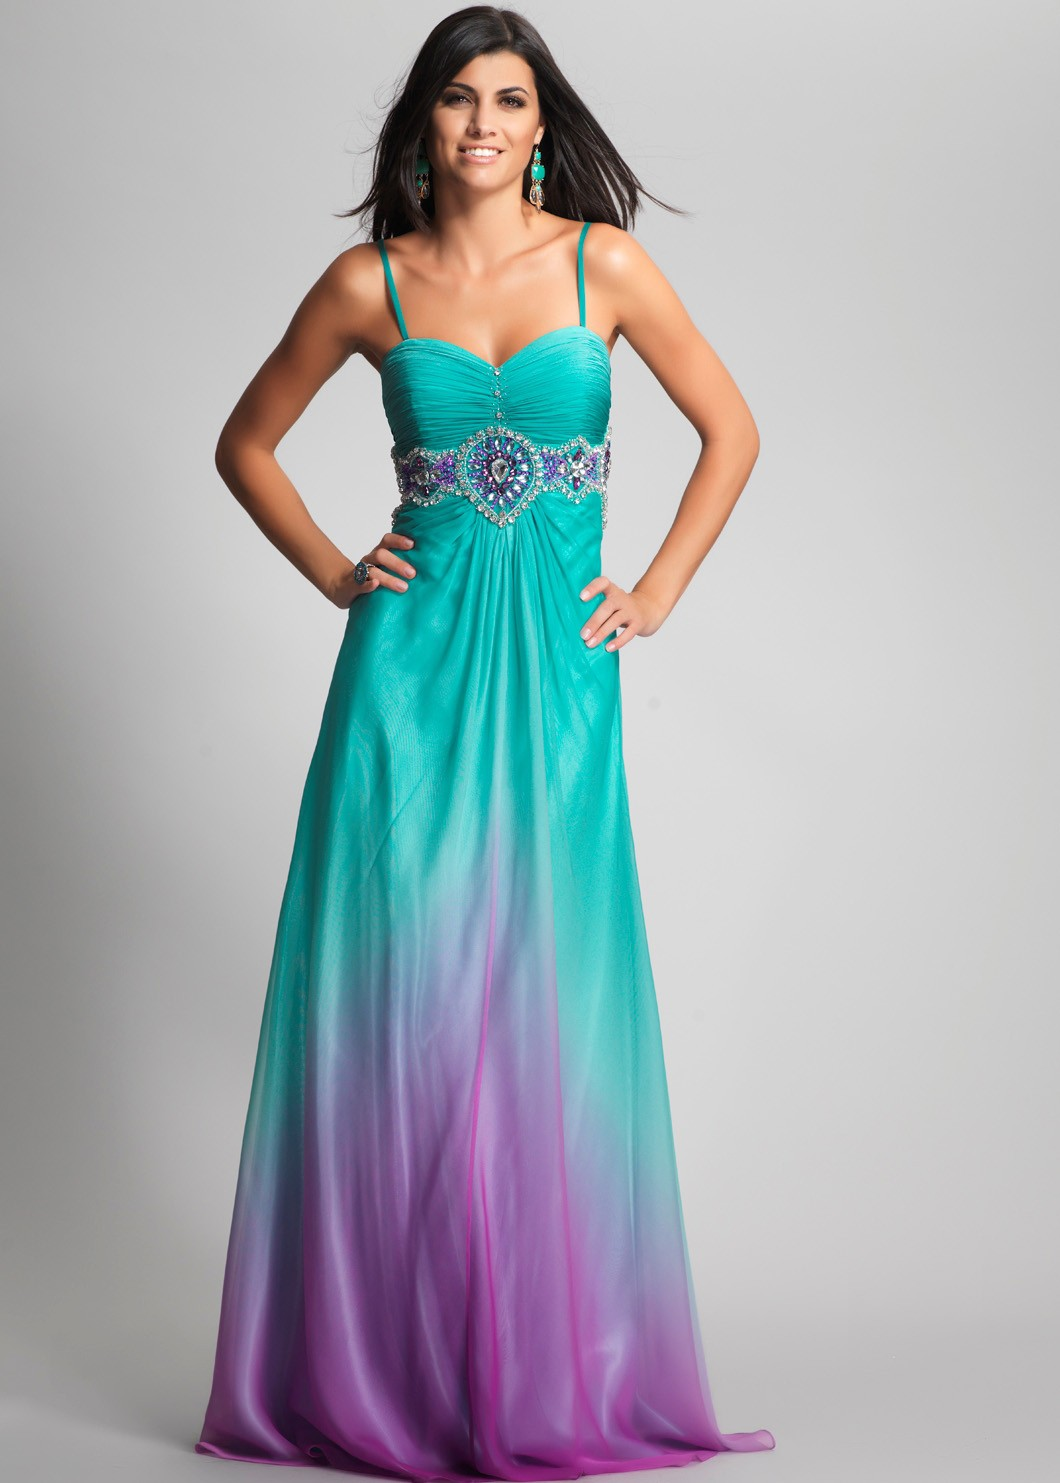 Camo and blue prom dresses - e-pic.info